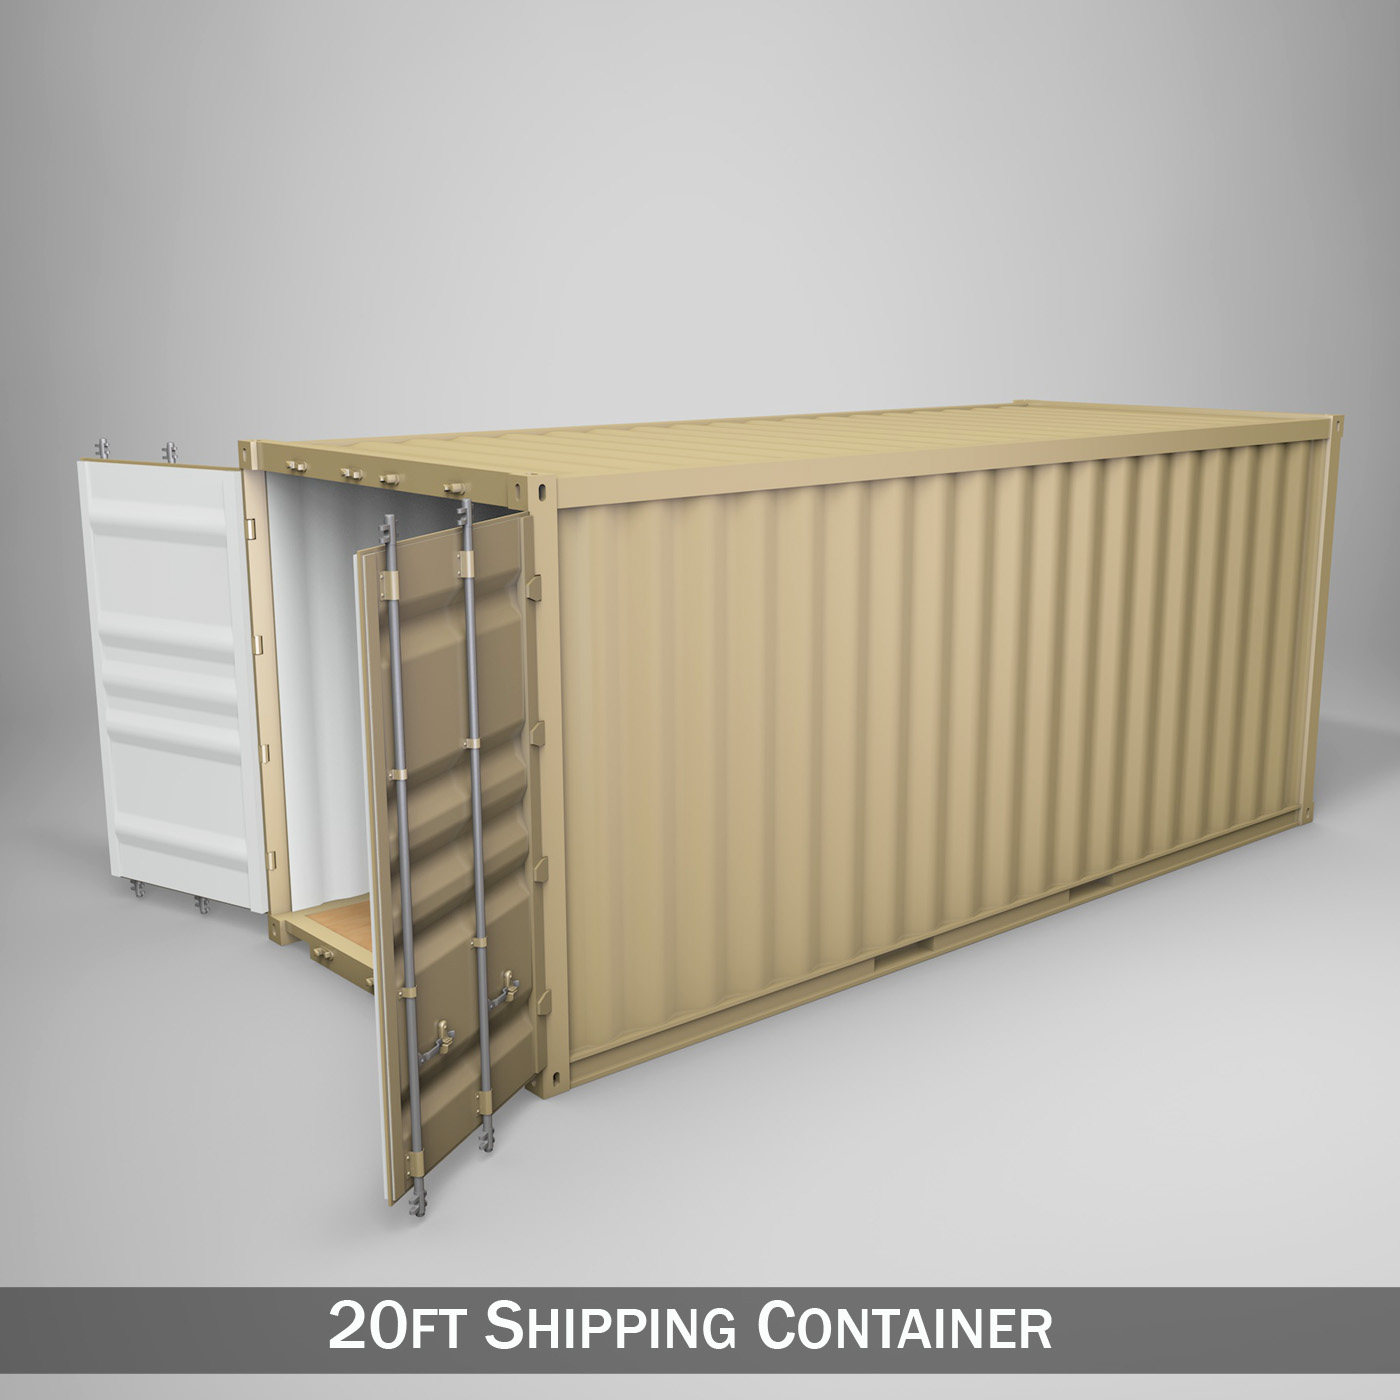 20ft shipping container 3d modelo 3ds fbx c4d lwo obj 252255